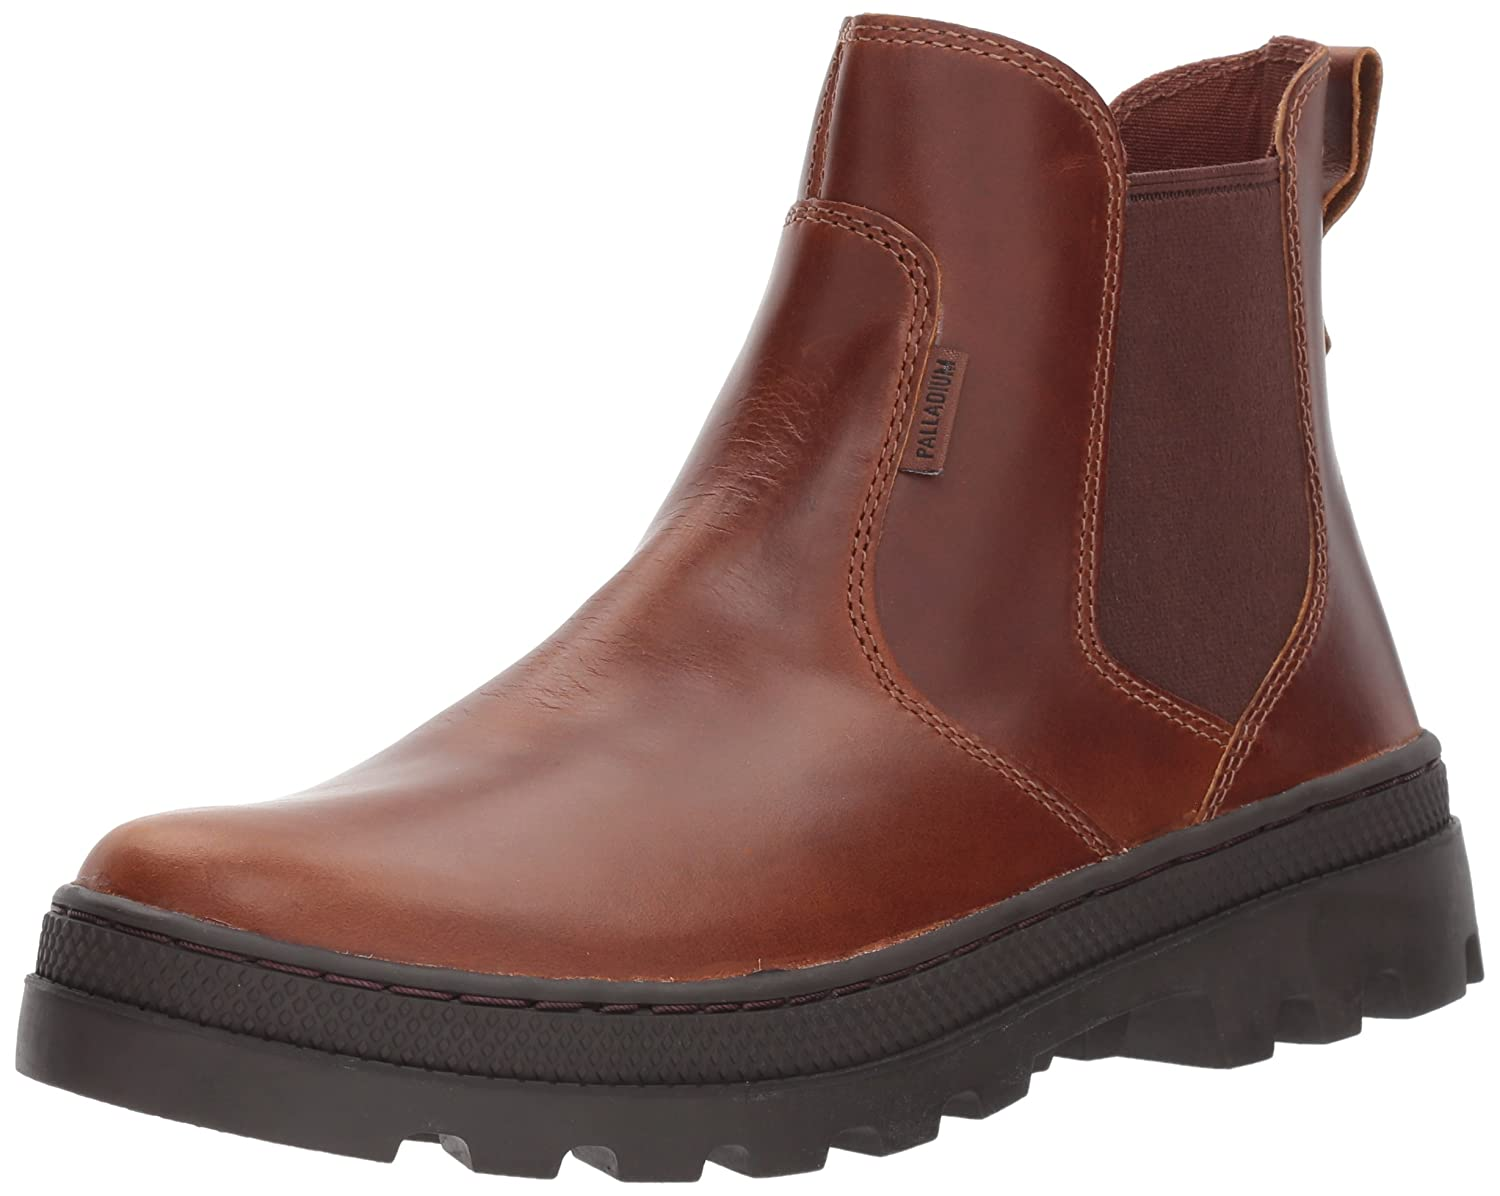 Palladium Women's Pallabosse Chelsea L Chukka Boot B01N179PN7 6.5 B(M) US|Sunrise/Chocolate